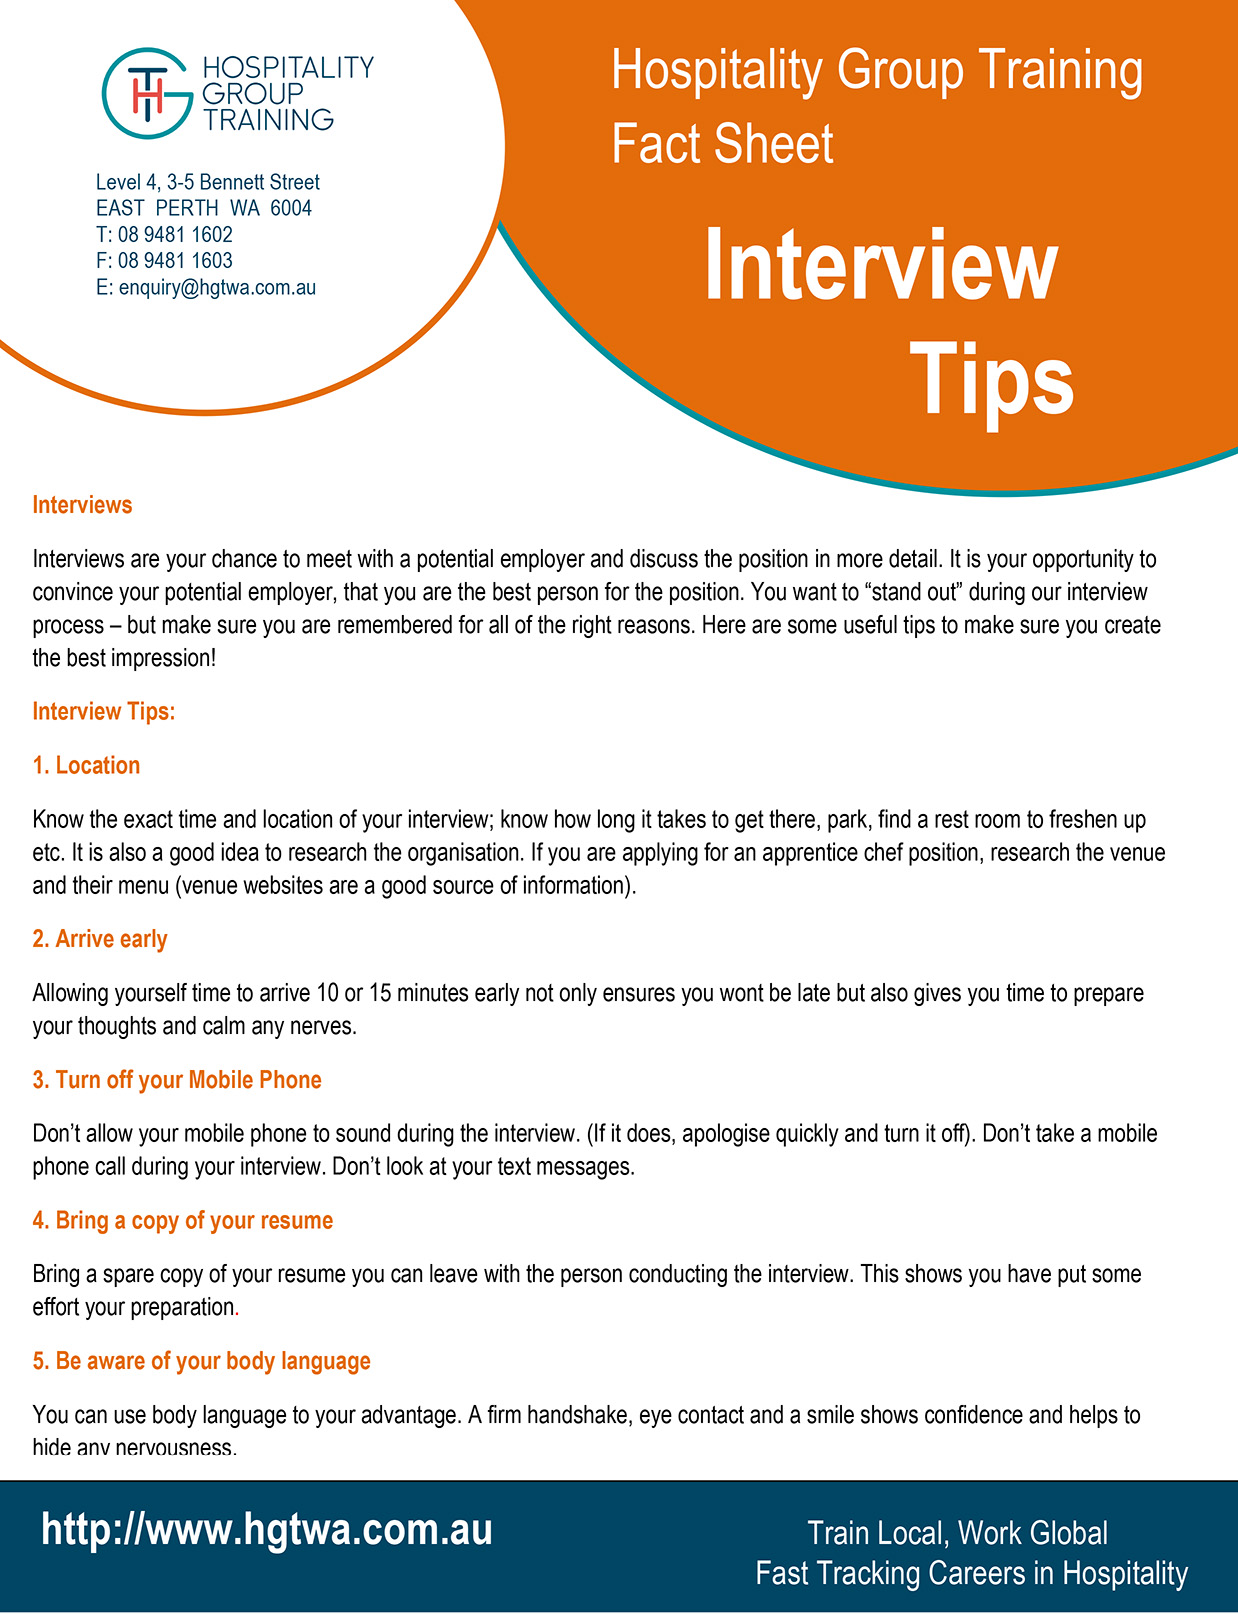 job ready fact sheets hospitality group training interview tips 2 page guide to interview etiquette